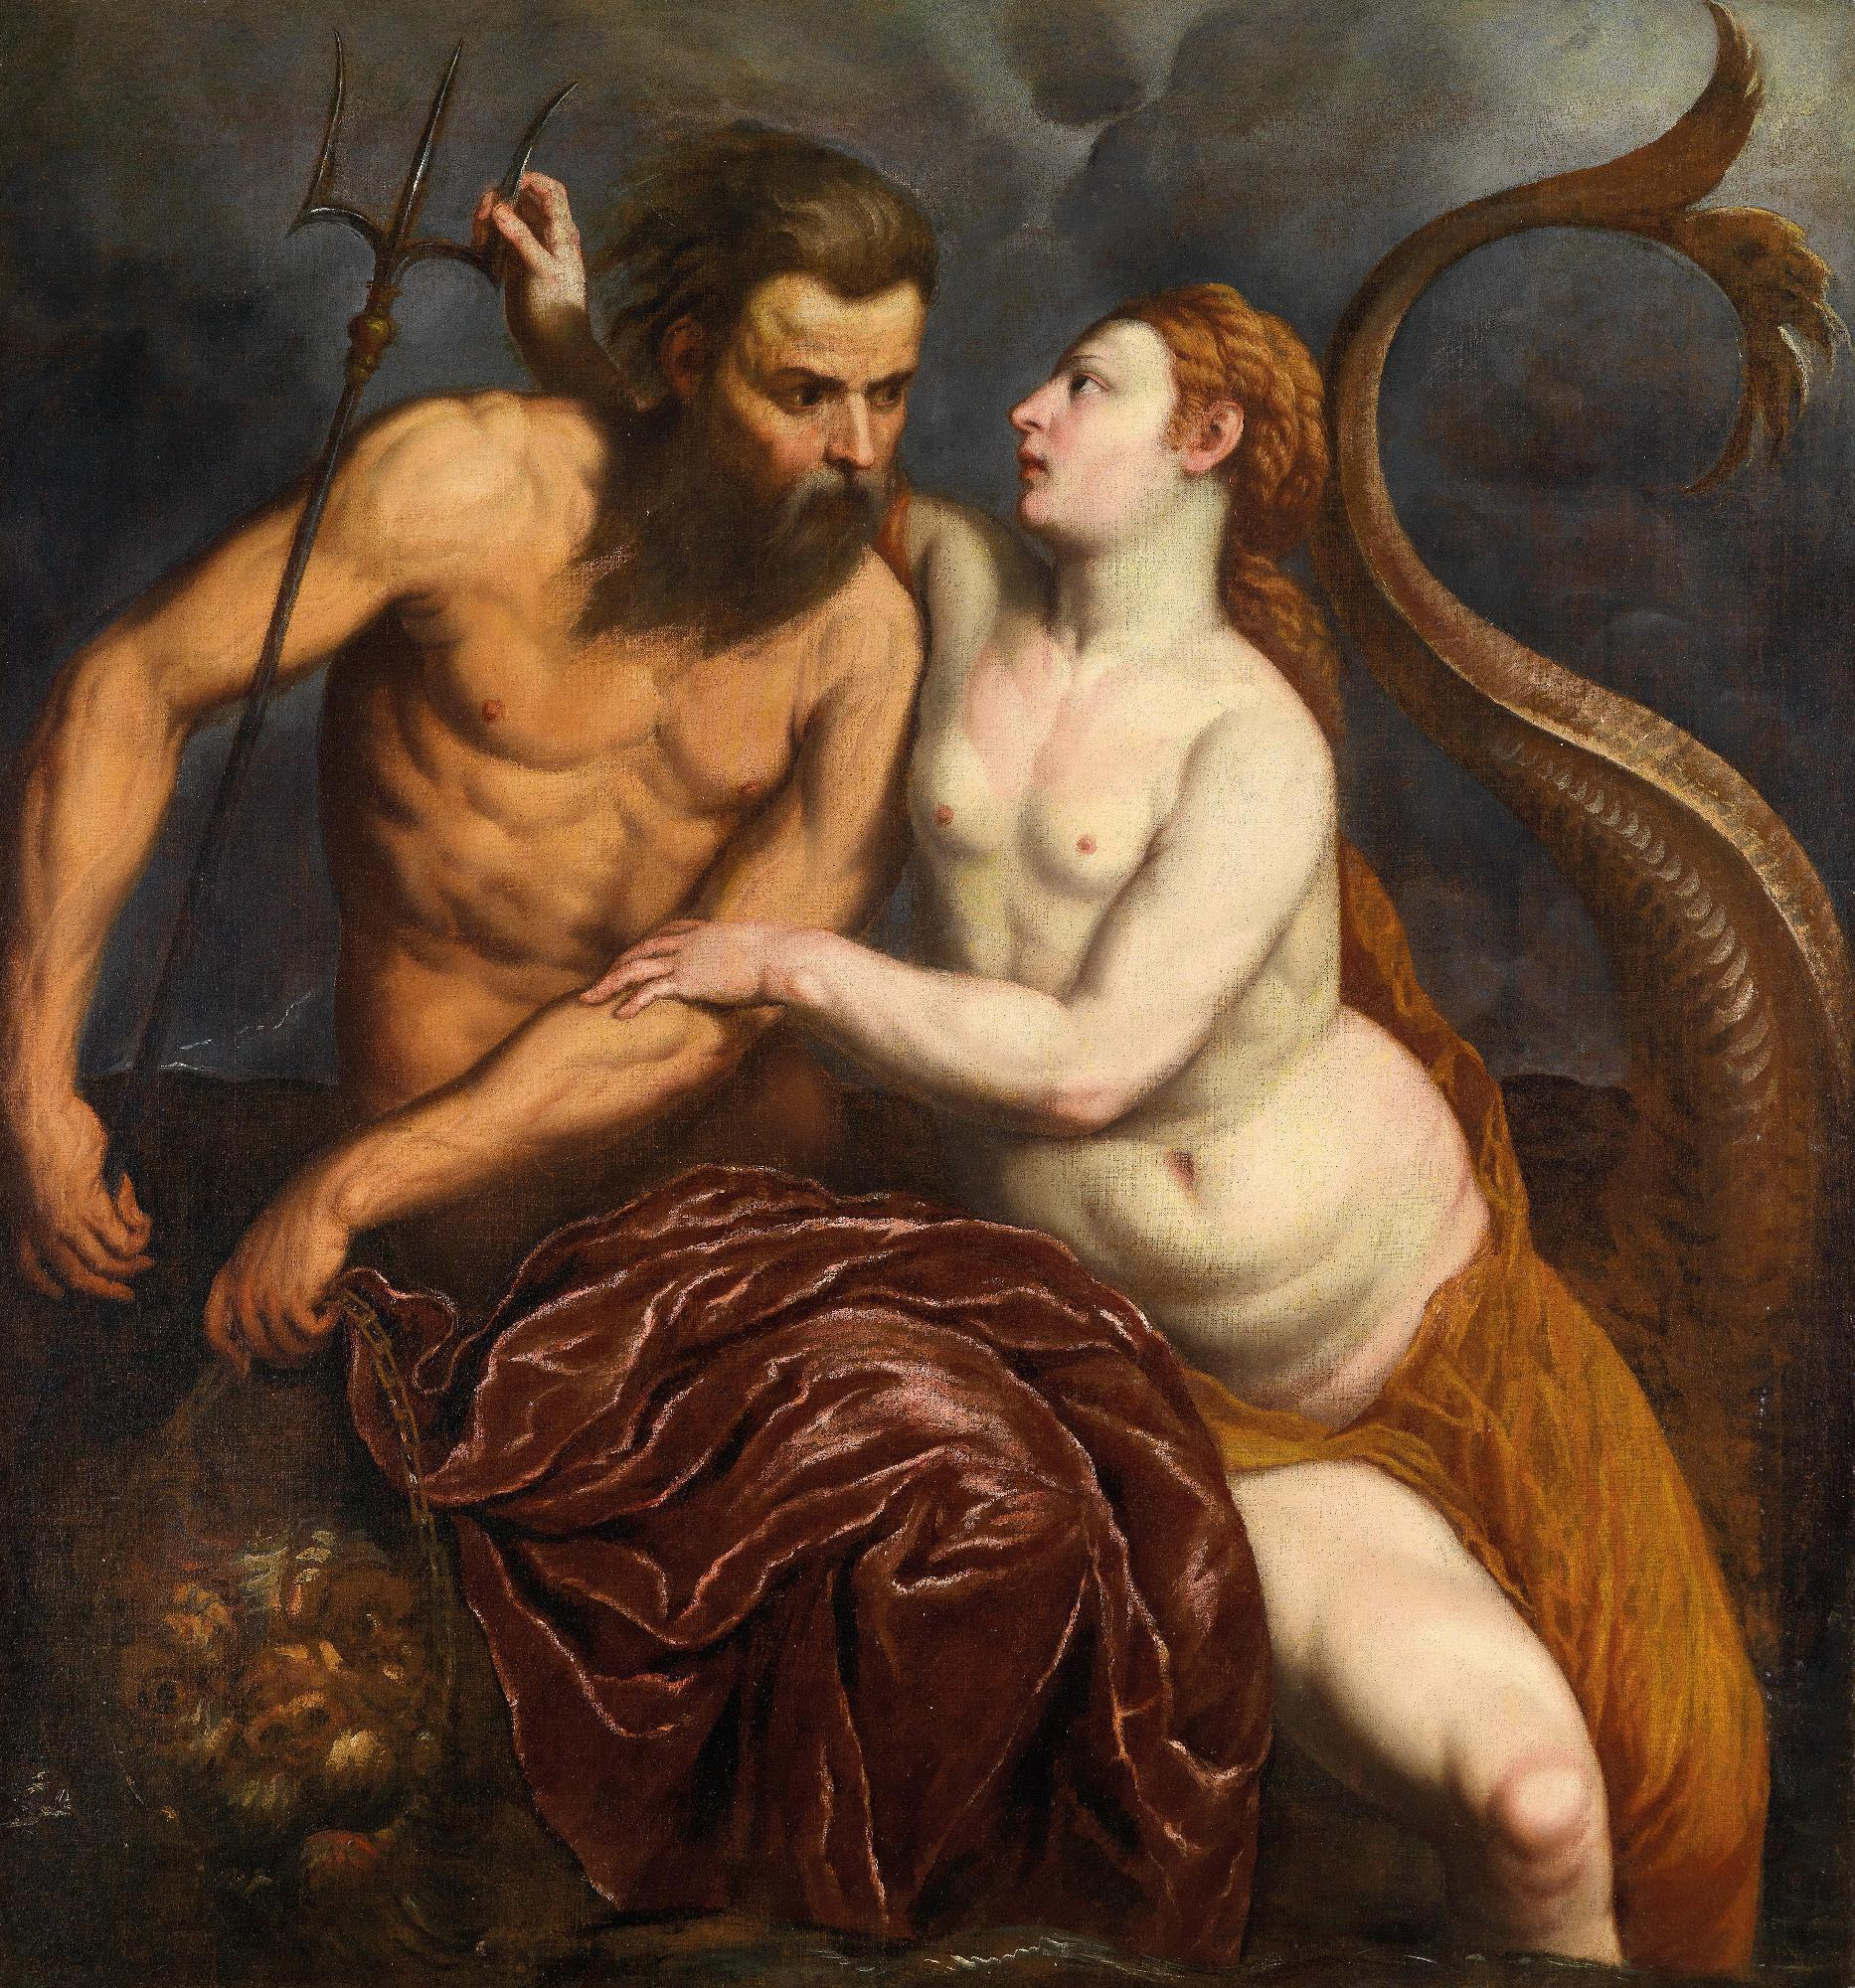 An image of Poseidon and Amphitrite, one of the Greek water nymphs known as nereids.